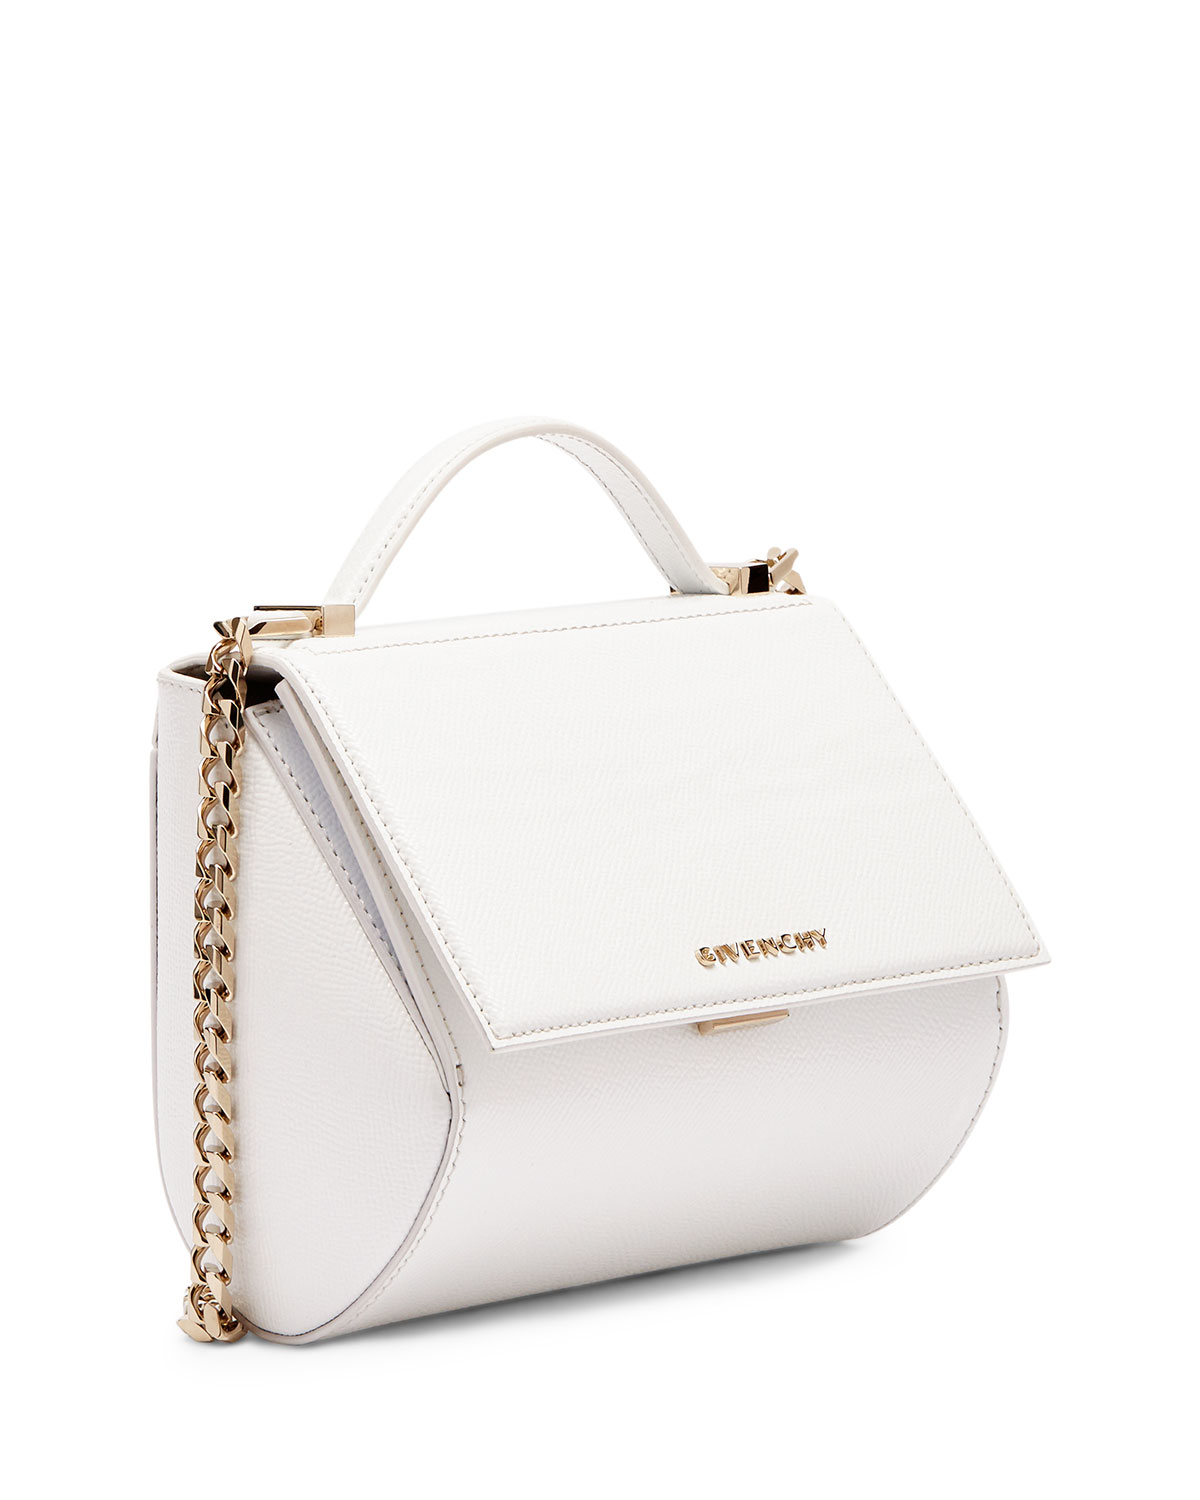 2cf1e2b0ec Lyst - Givenchy Pandora Box Mini Leather Bag in White